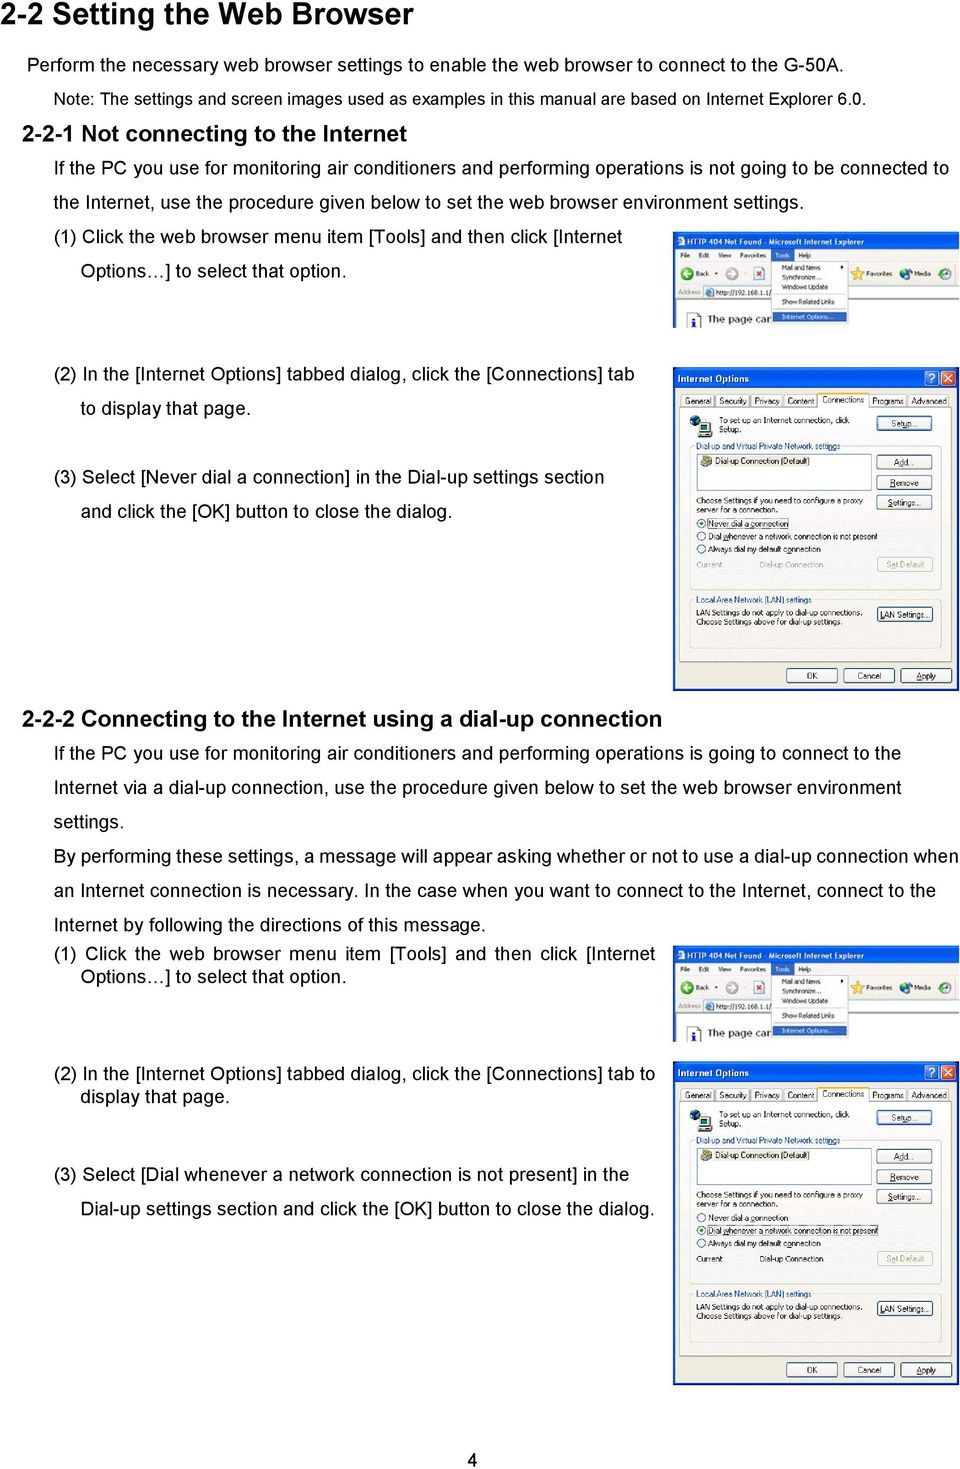 2-2-1 Not connecting to the Internet If the PC you use for monitoring air conditioners and performing operations is not going to be connected to the Internet, use the procedure given below to set the